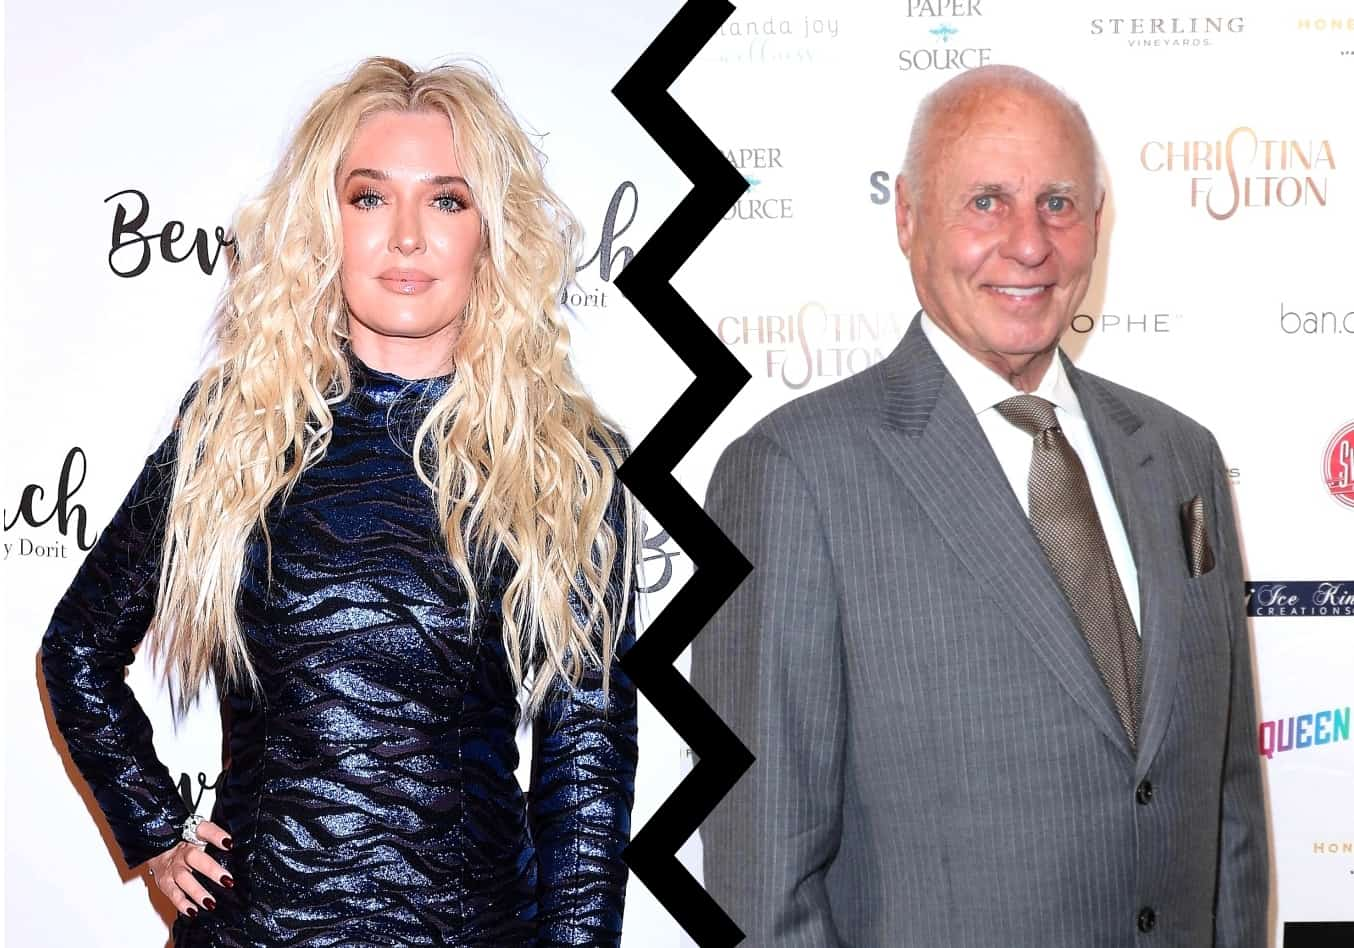 RHOBH's Erika Jayne Asks For Spousal Support From Ex Thomas Girardi in Divorce, Moves Out of $7 Million Marital Home and Into $7,000 Per Month Condo